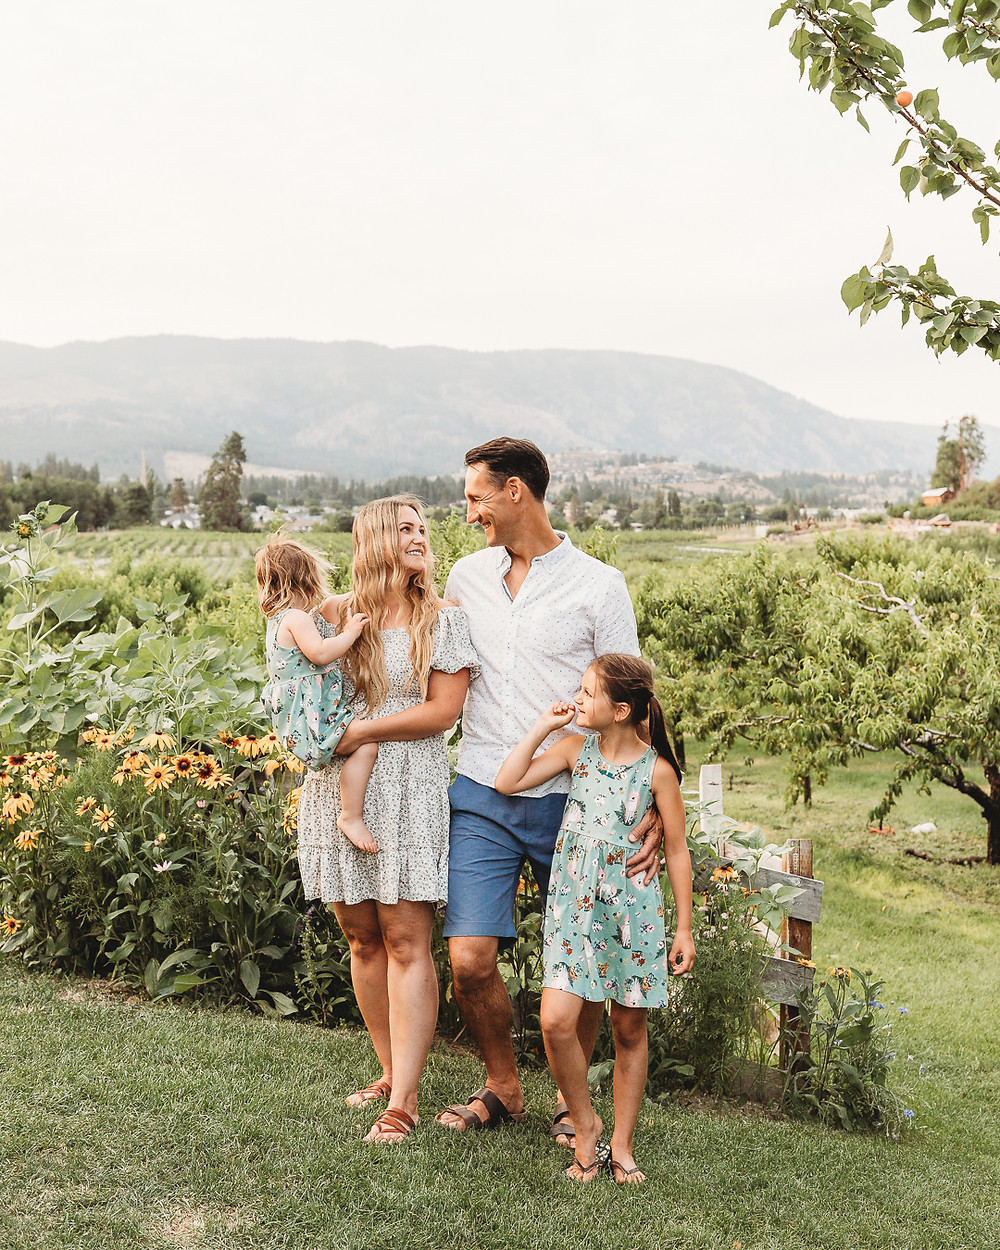 A family stand-in together at a fruit orchard in Kelowna BC at sunset smiling at each other.